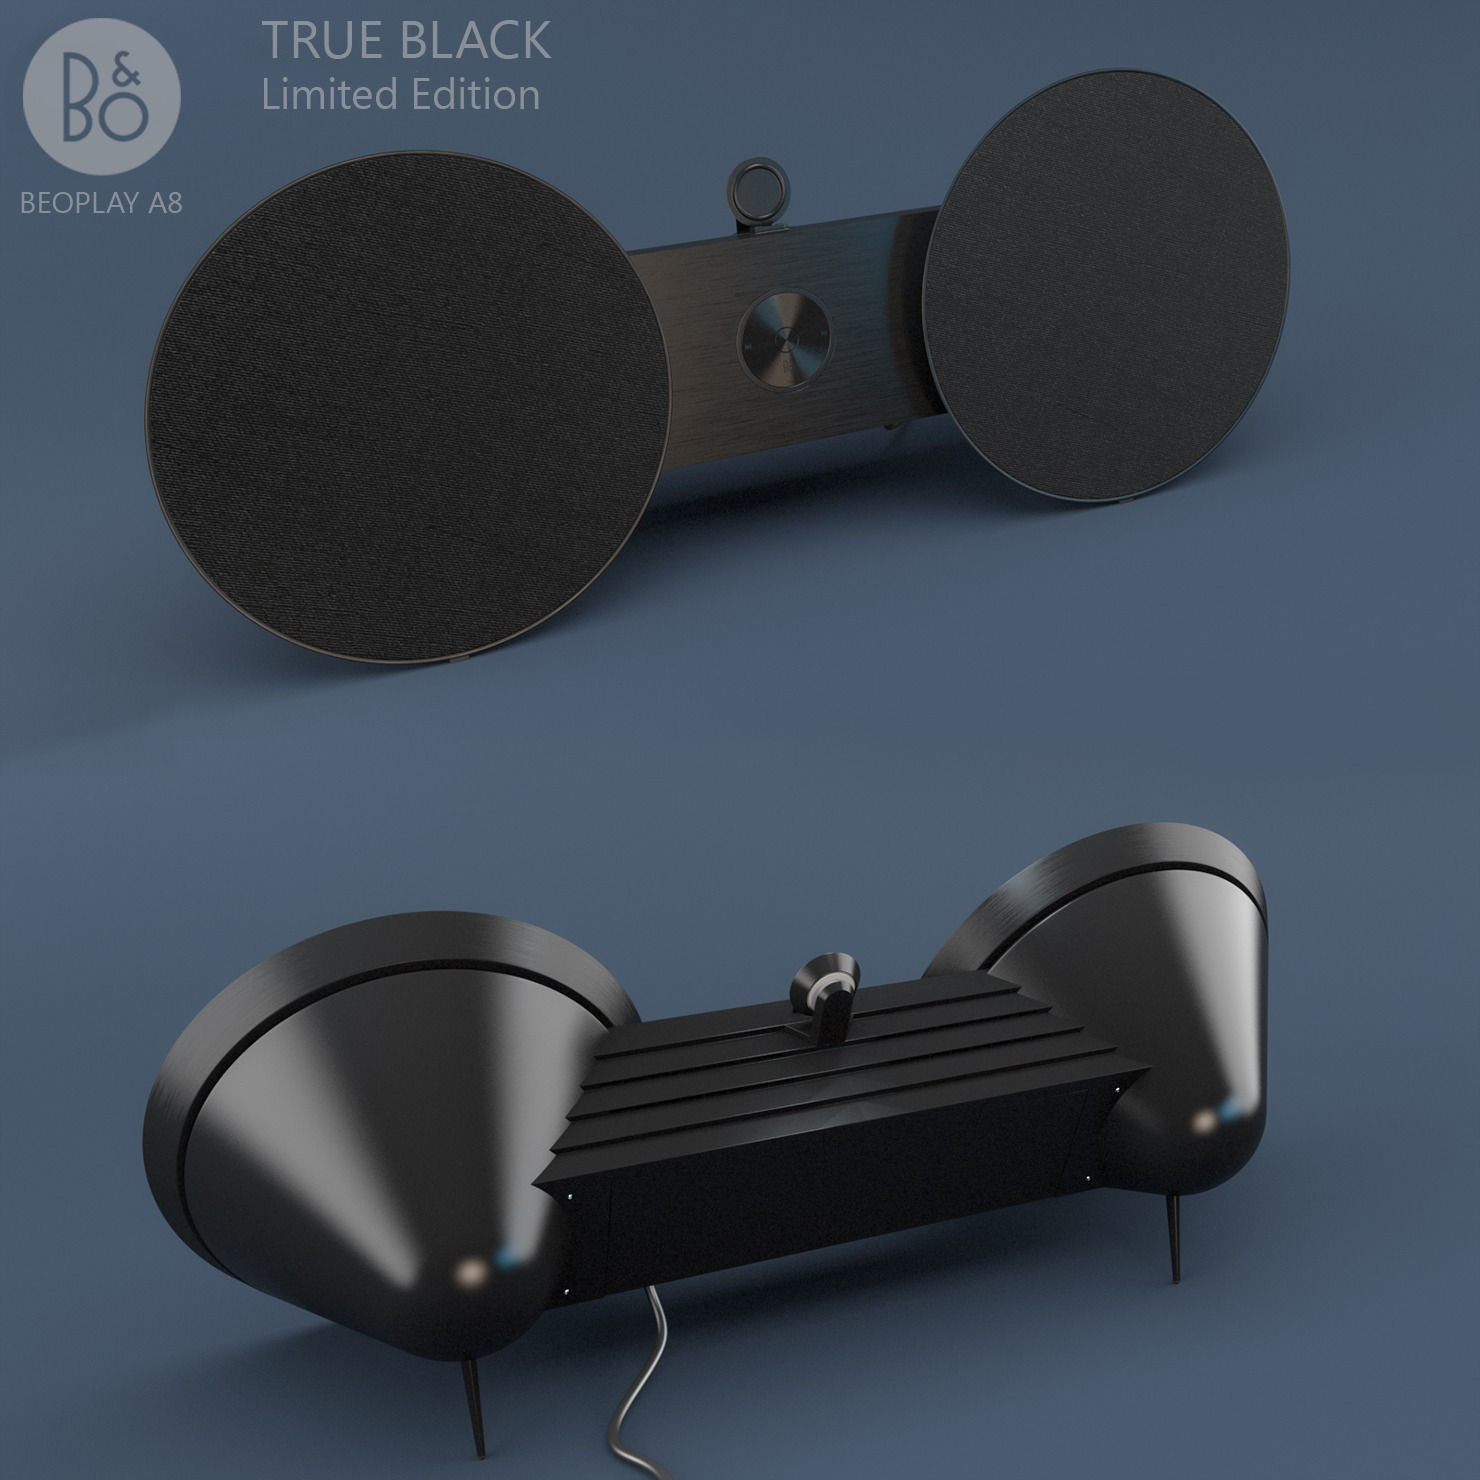 Beoplay A8 By Bang And Olufsen furthermore Bang Olufsen BeoPlay A8 Black Lightning Speaker Adapter 3114544 further Ebay item view fangyi together with B O Play By Bang Olufsen Beoplay A1 Portable Bluetooth Speaker Sand Stone likewise 330877509339. on bang olufsen a8 colors